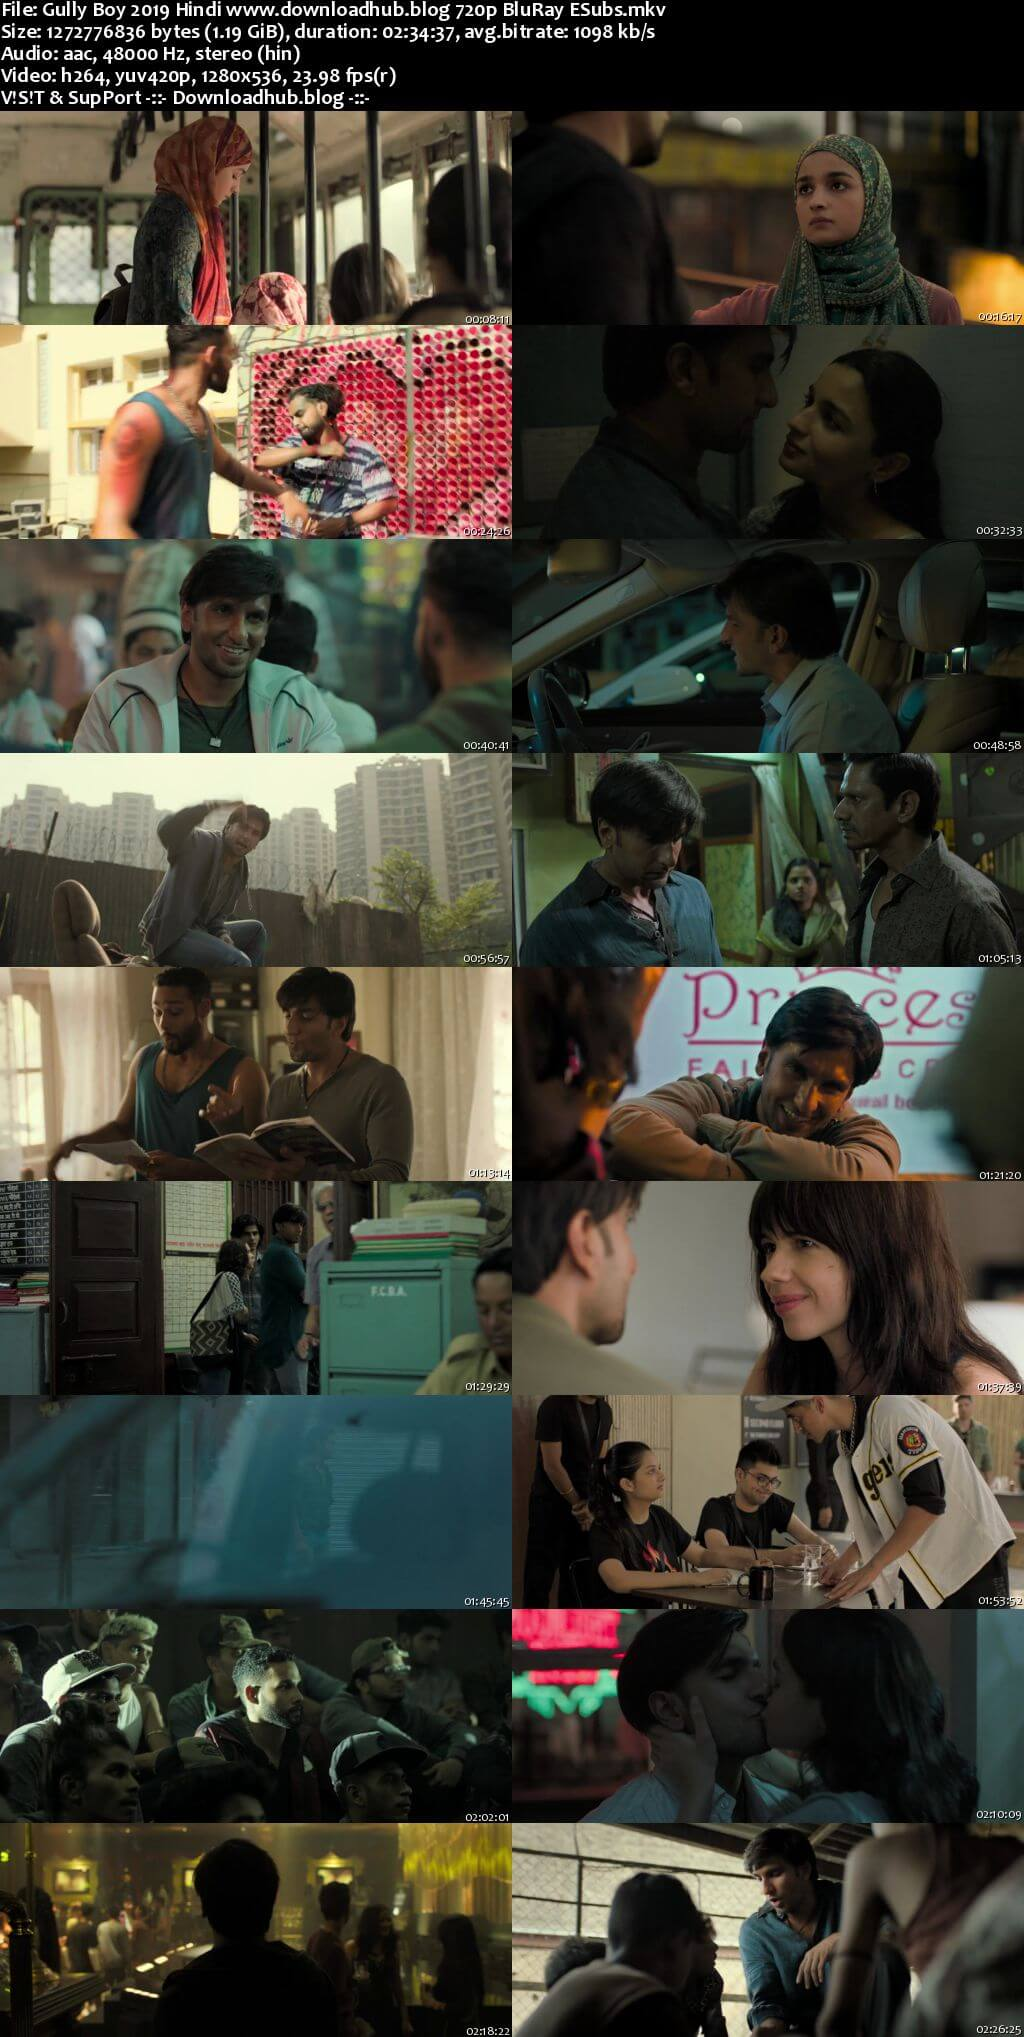 Gully Boy 2019 Hindi 720p BluRay ESubs